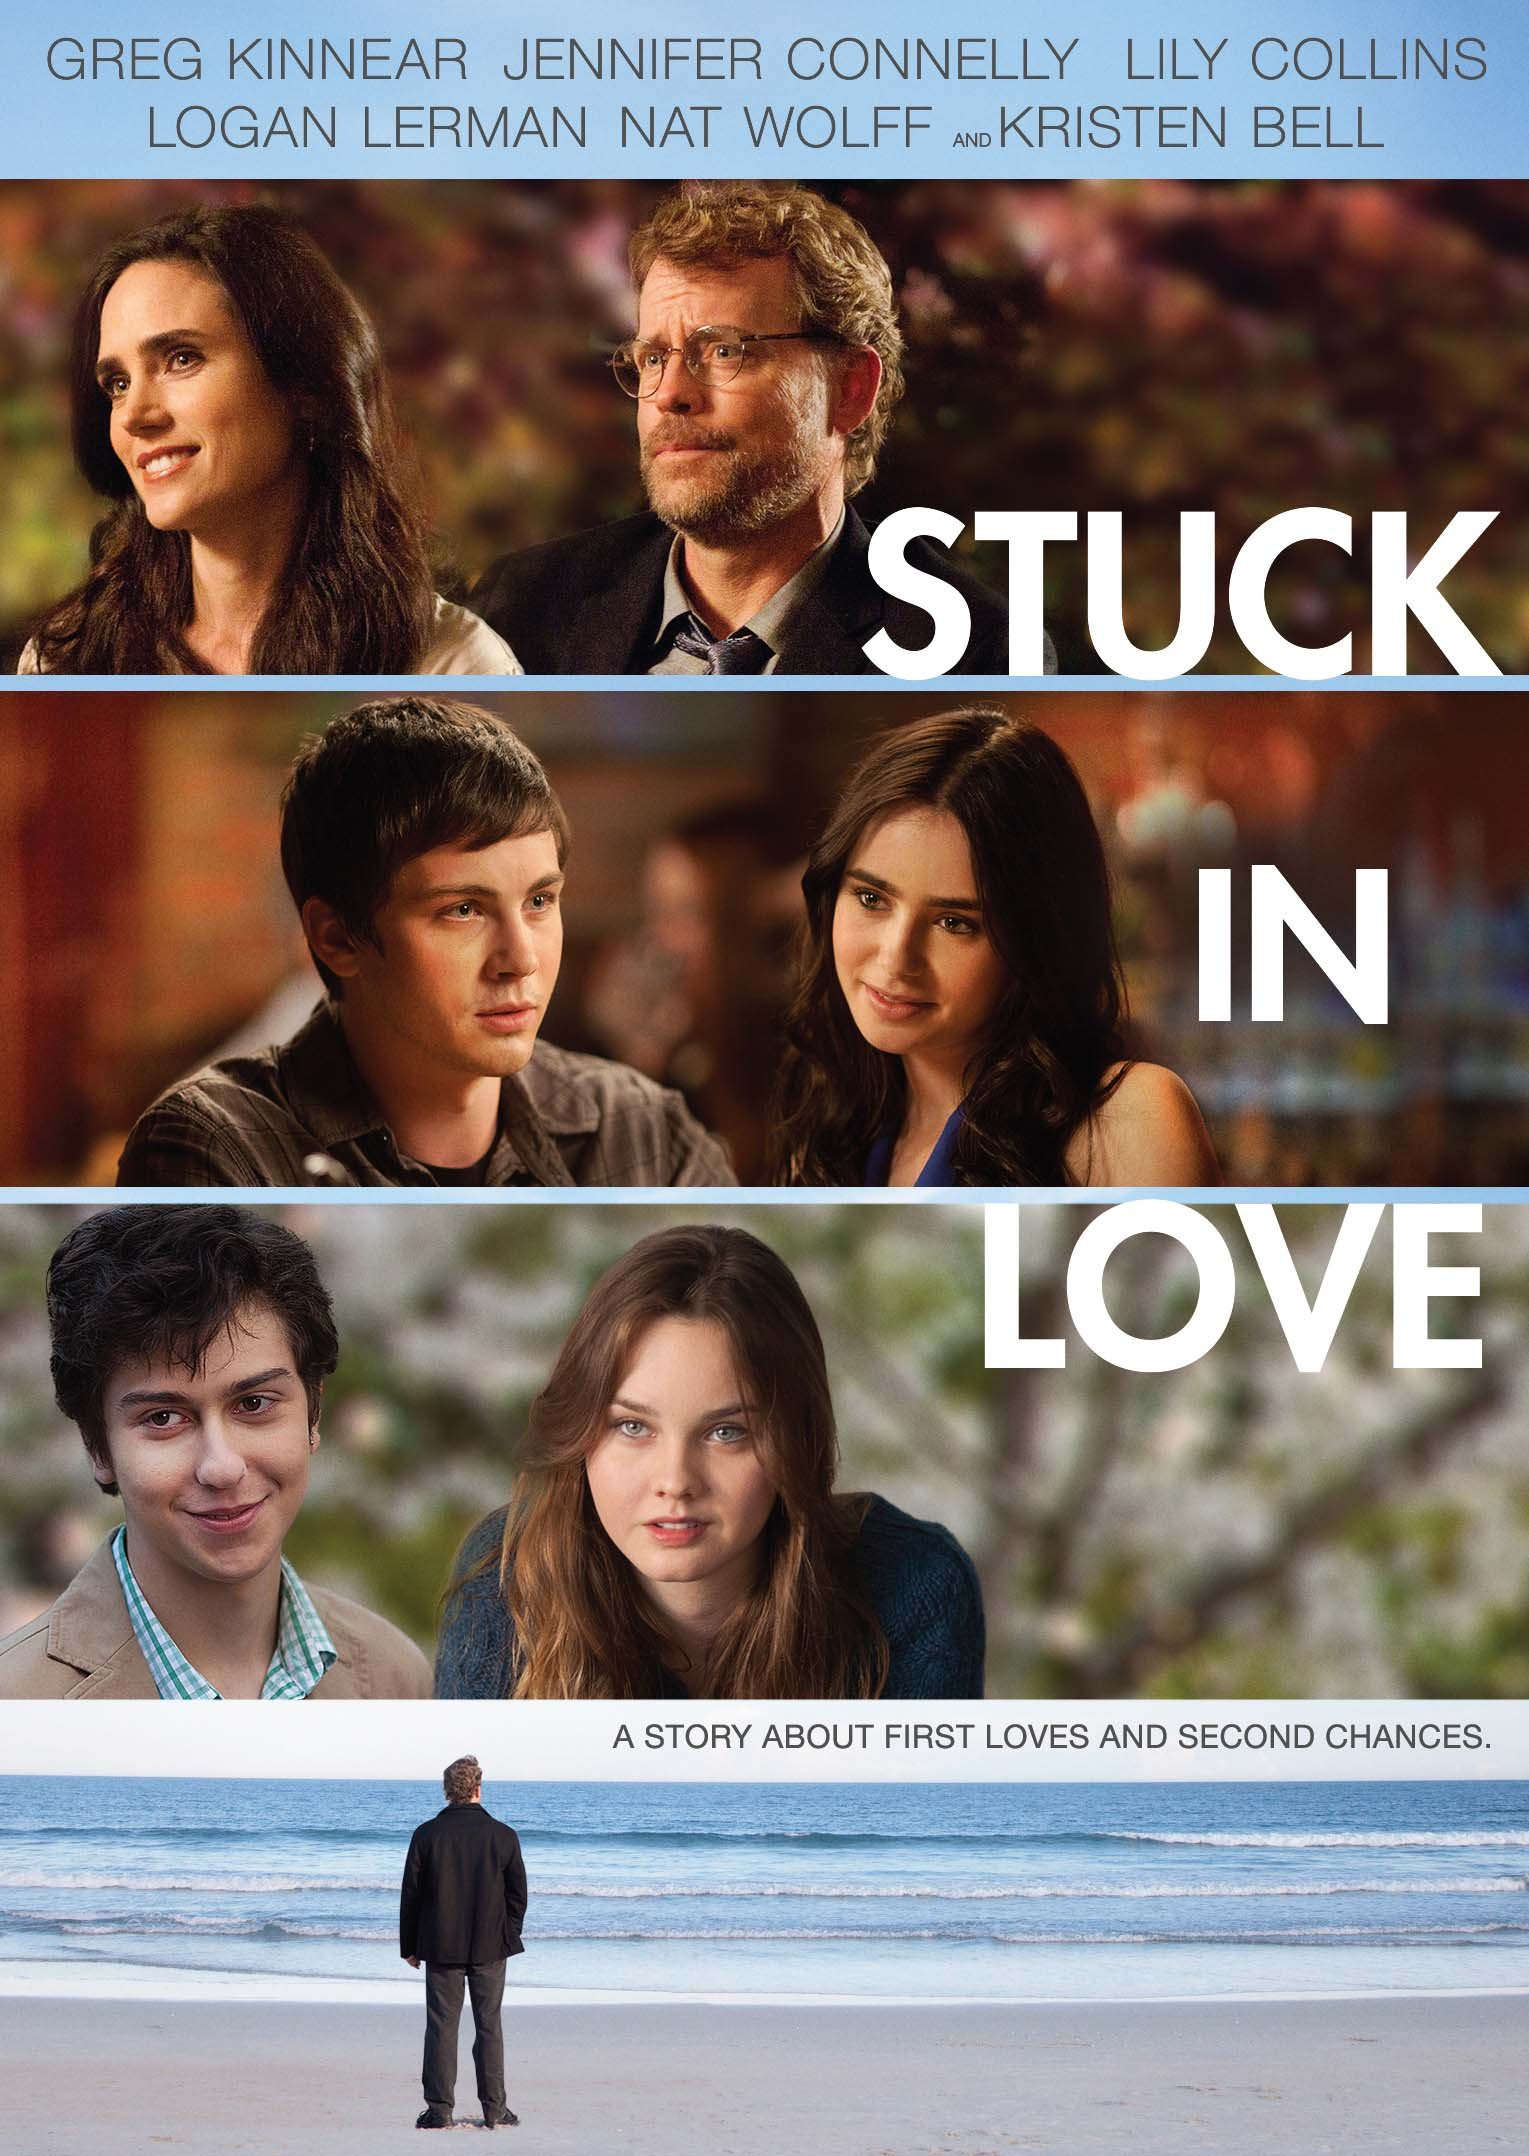 http://static.cinemagia.ro/img/db/movie/58/83/92/stuck-in-love-436114l.jpg